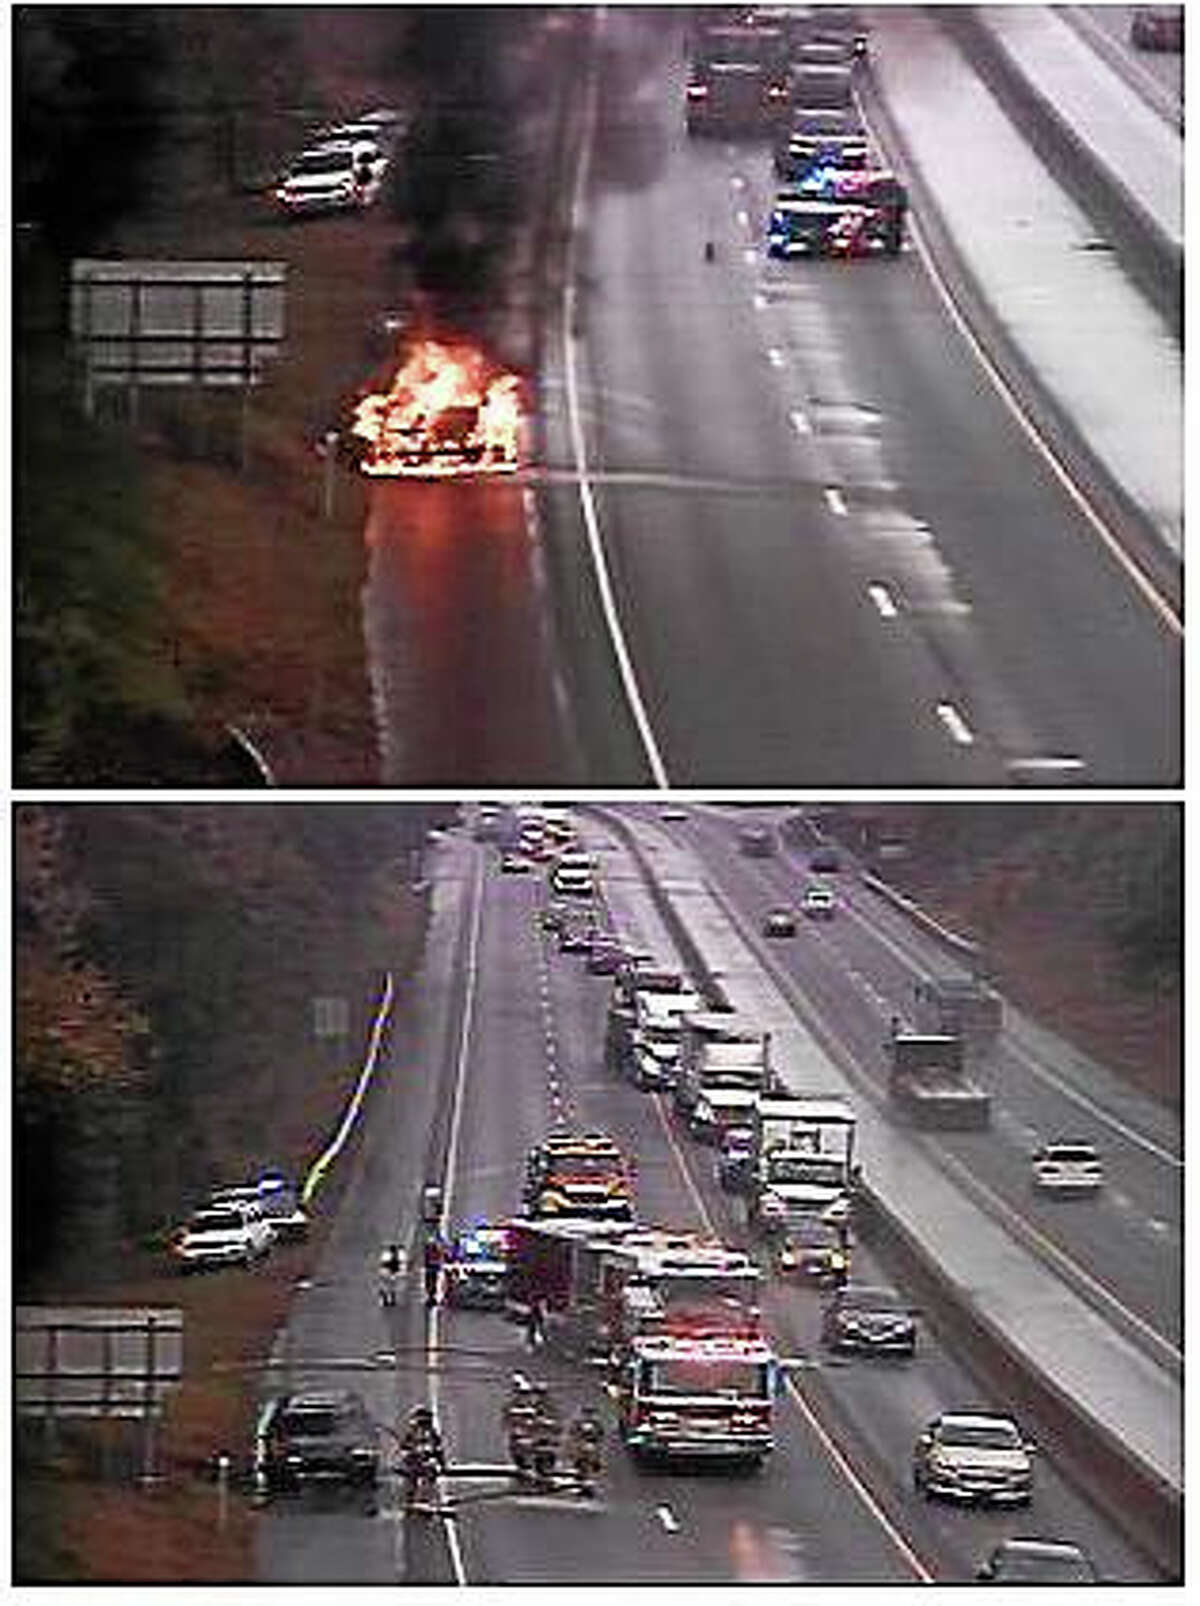 A car fire briefly shut down part of Interstate 95 near Exit 63 in Clinton late Tuesday morning. Fire crews were able to quickly extinguish the flames.